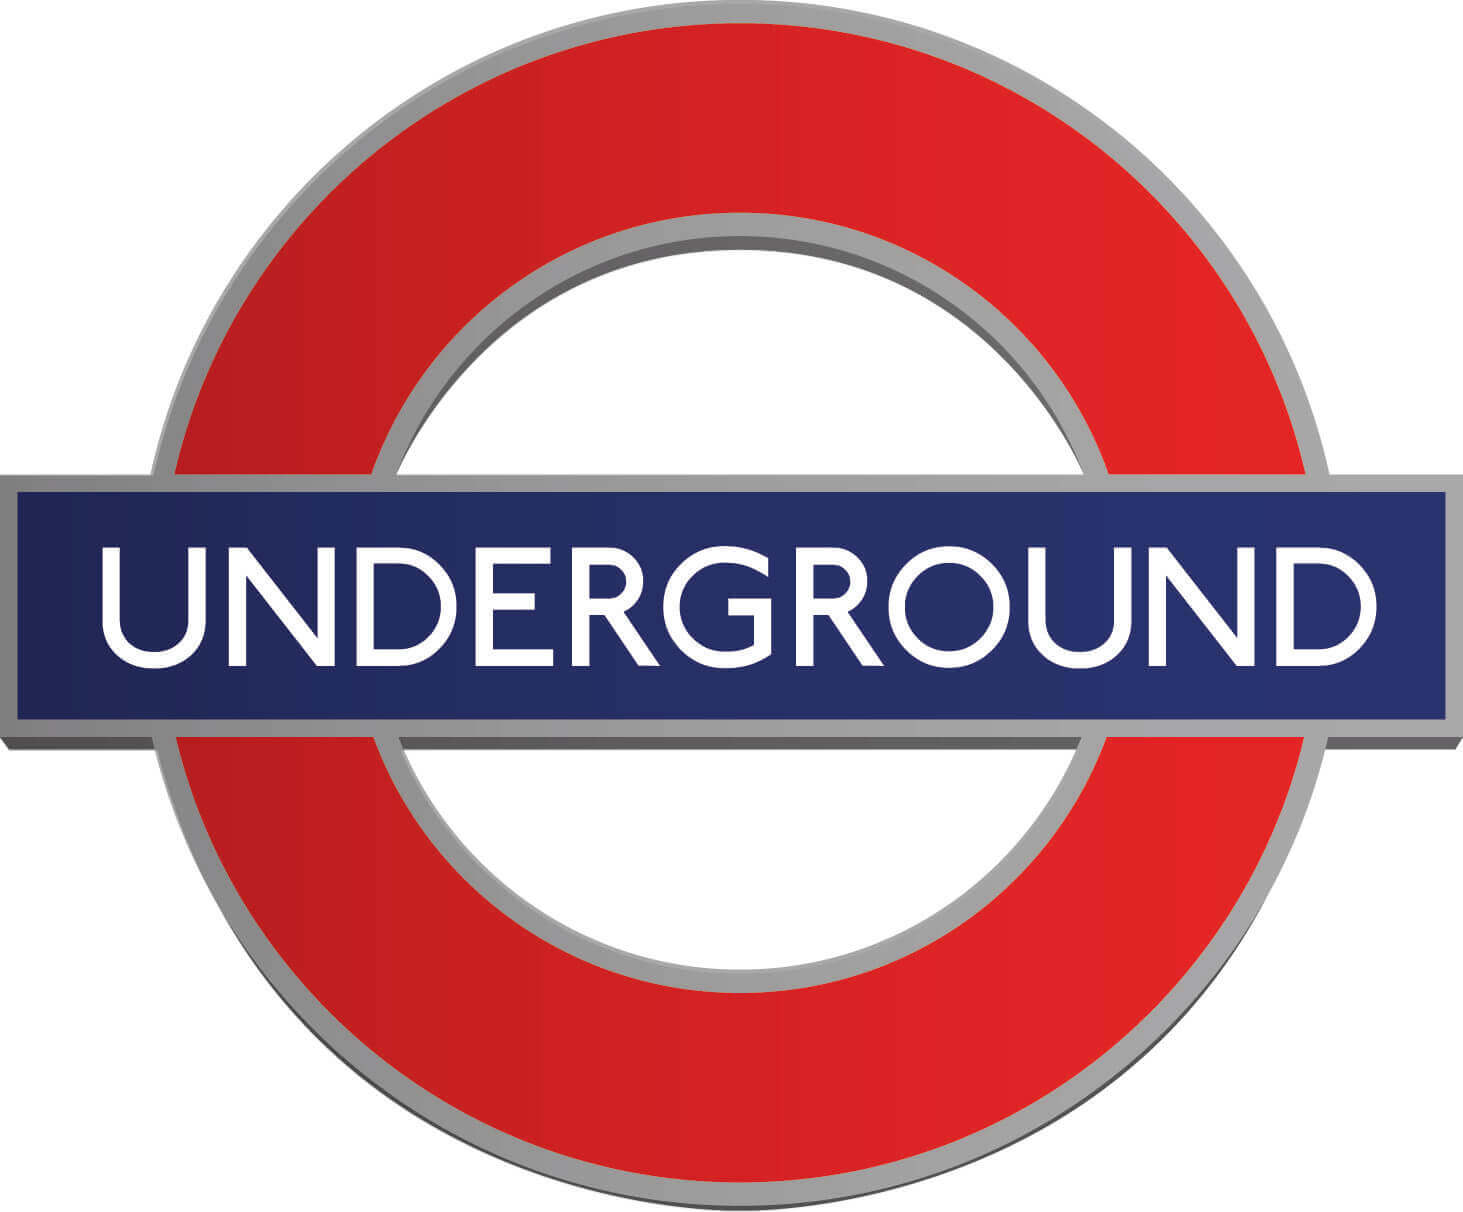 The London Underground logo